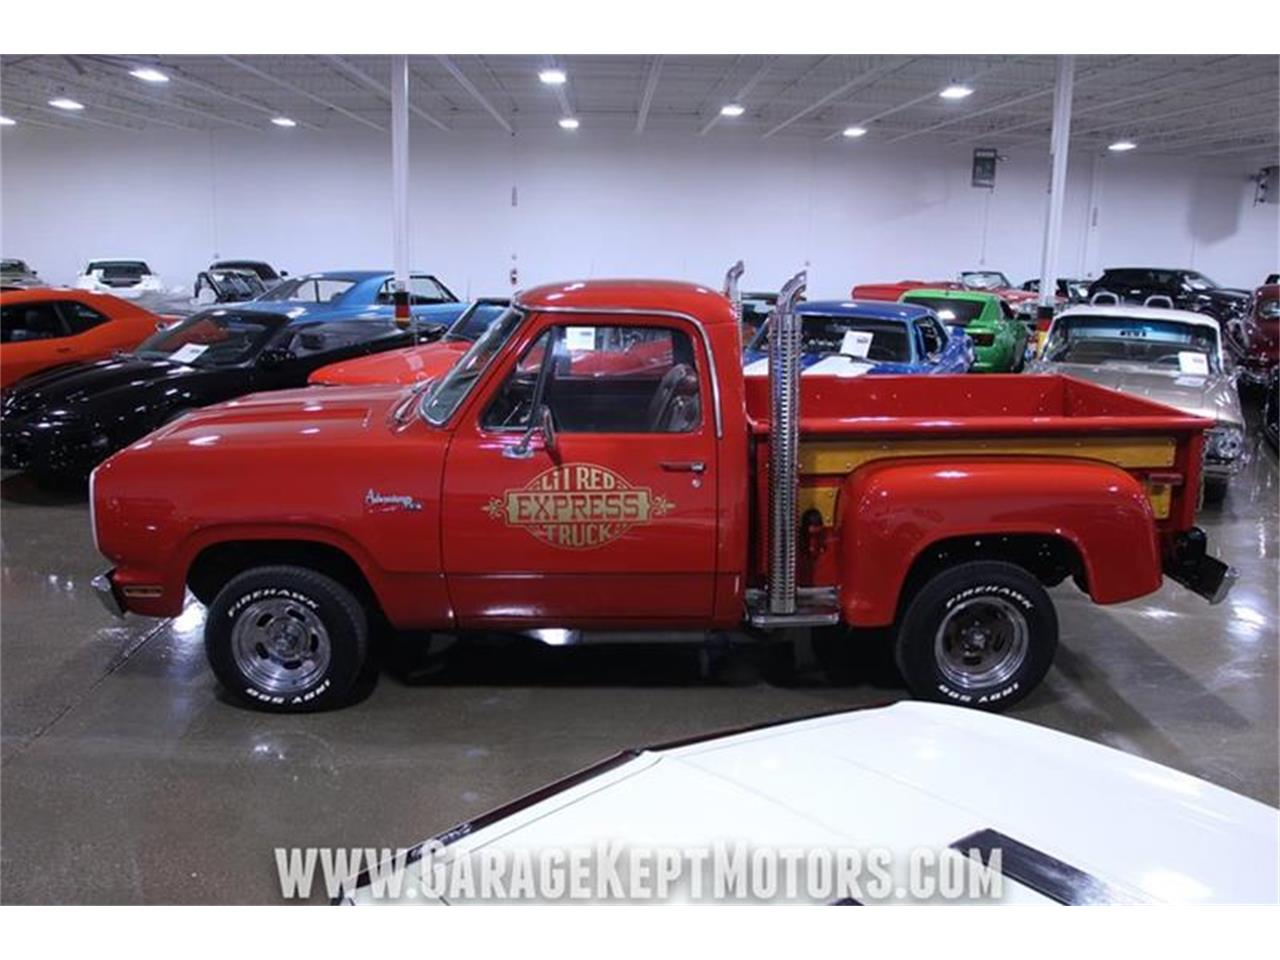 1978 Dodge Little Red Express (CC-1218298) for sale in Grand Rapids, Michigan